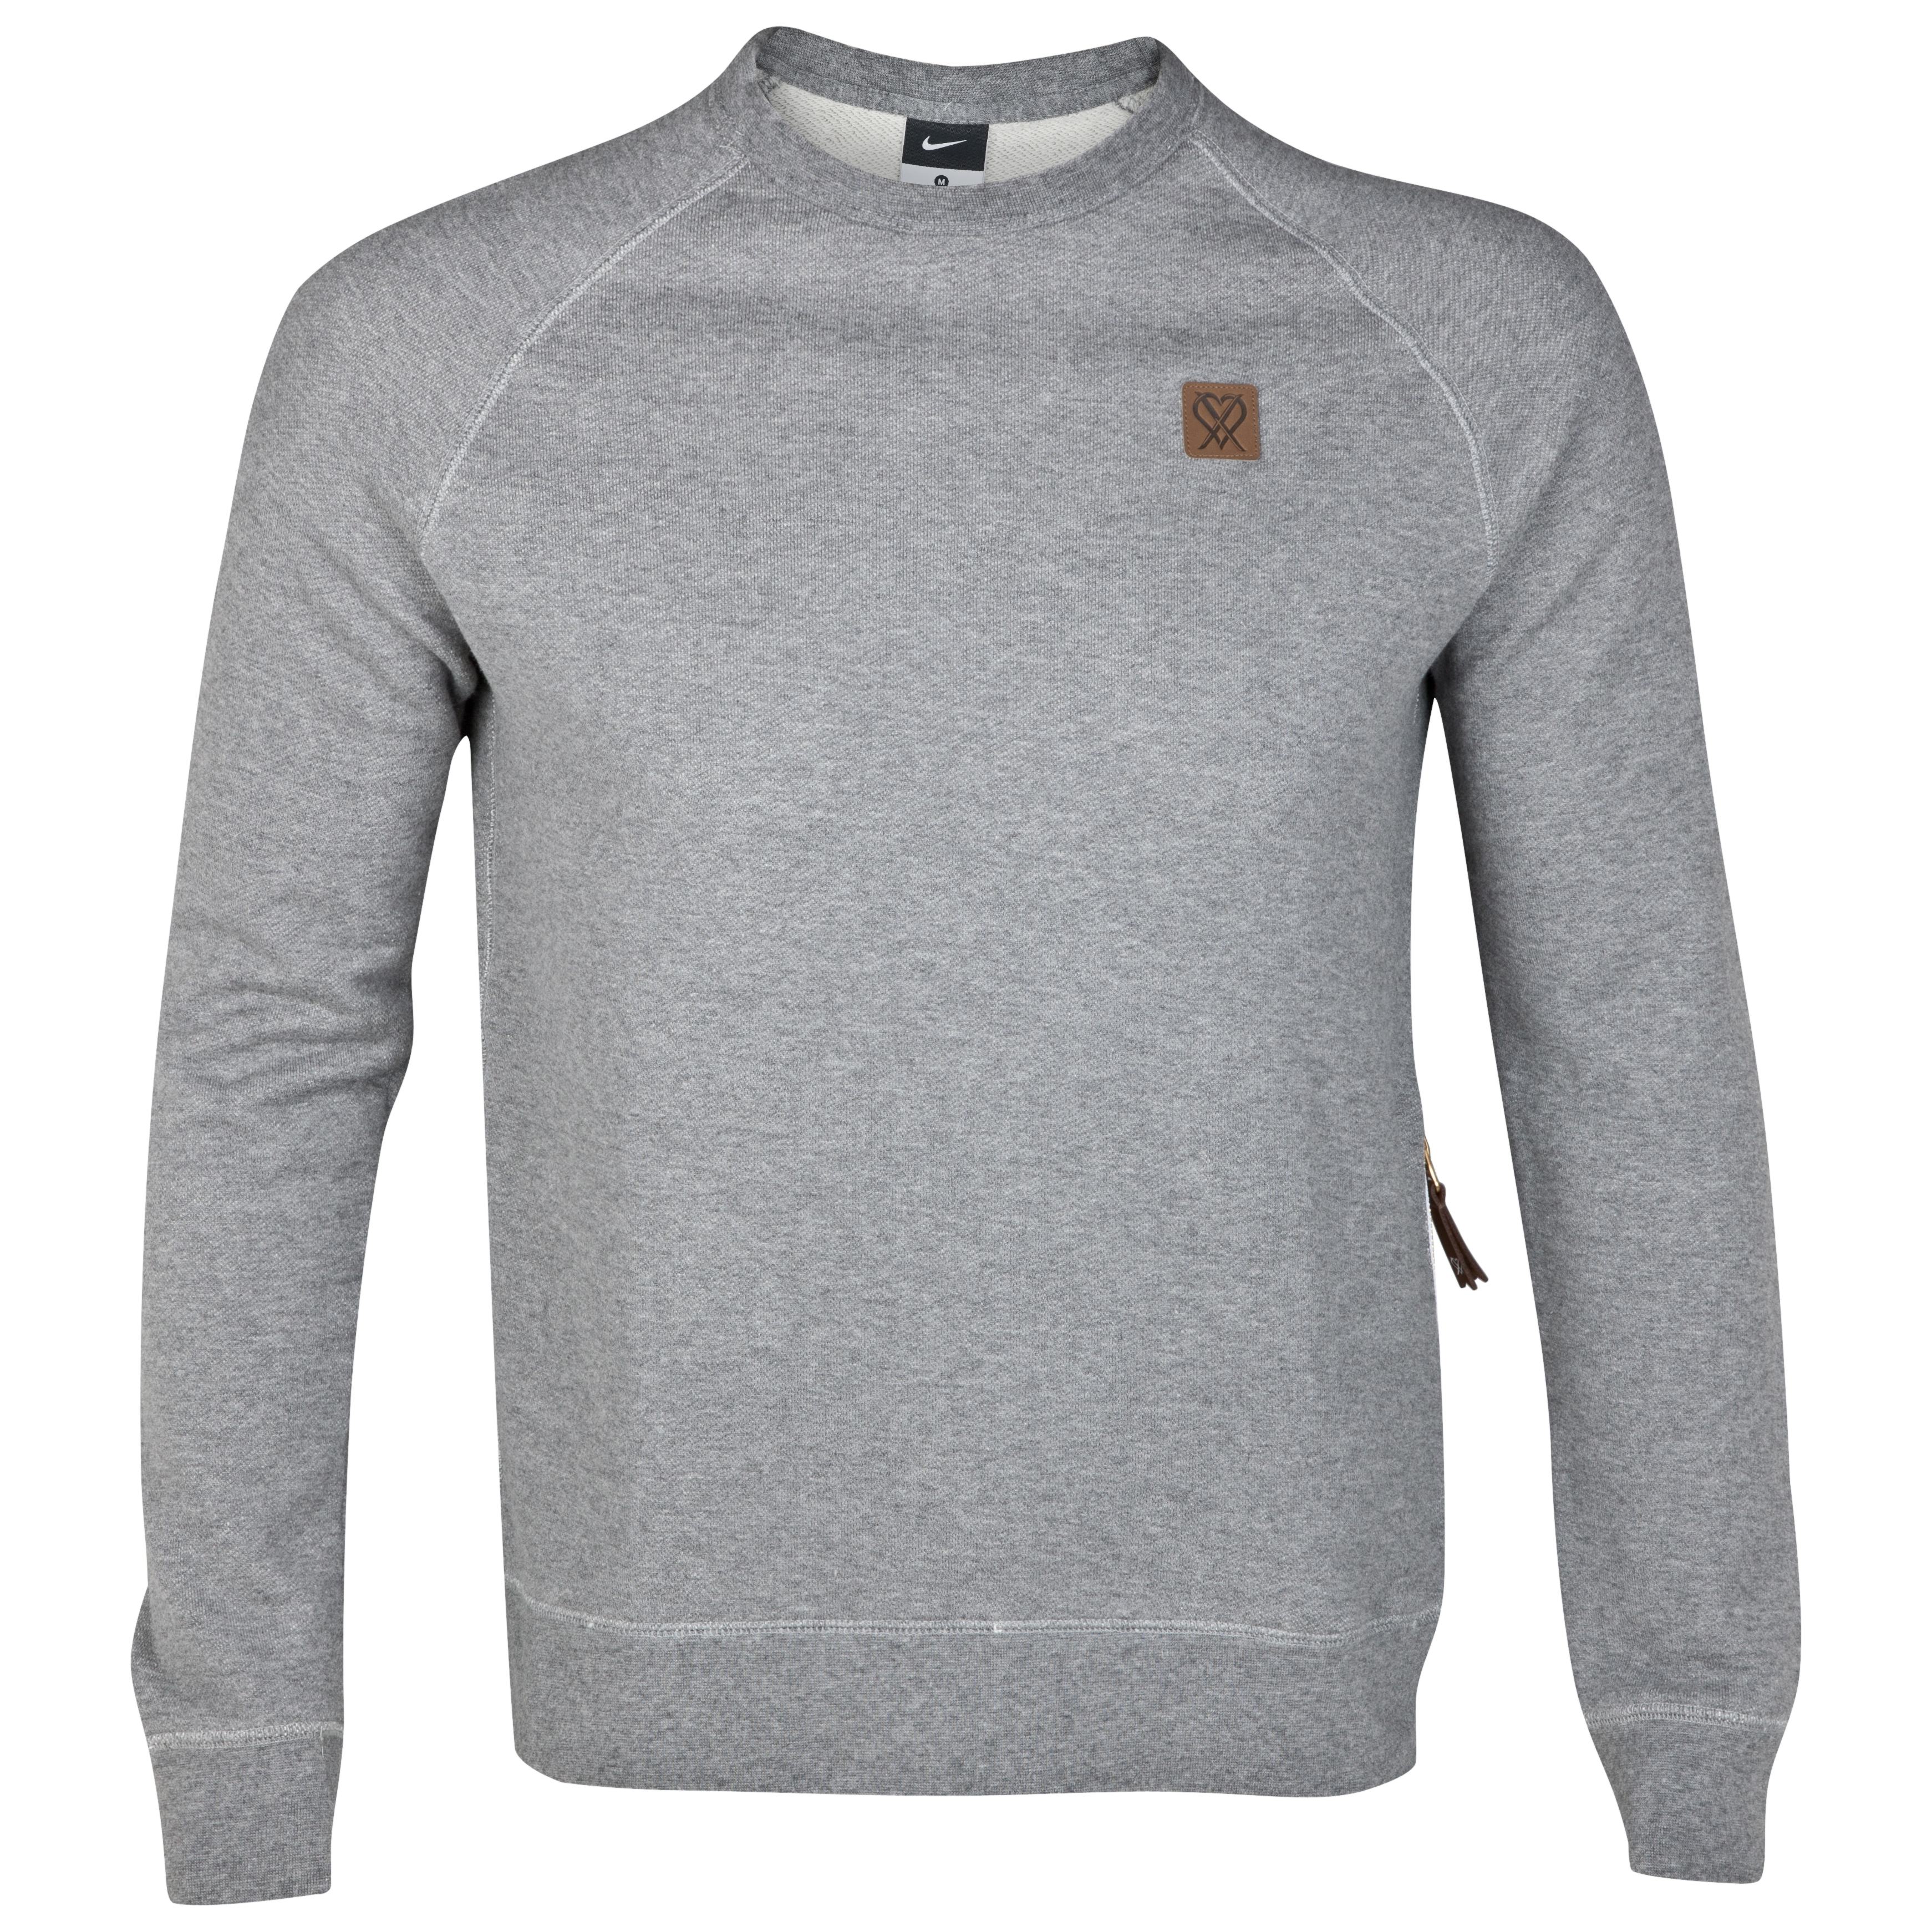 Nike CR Sweatshirt - Carbon Heather